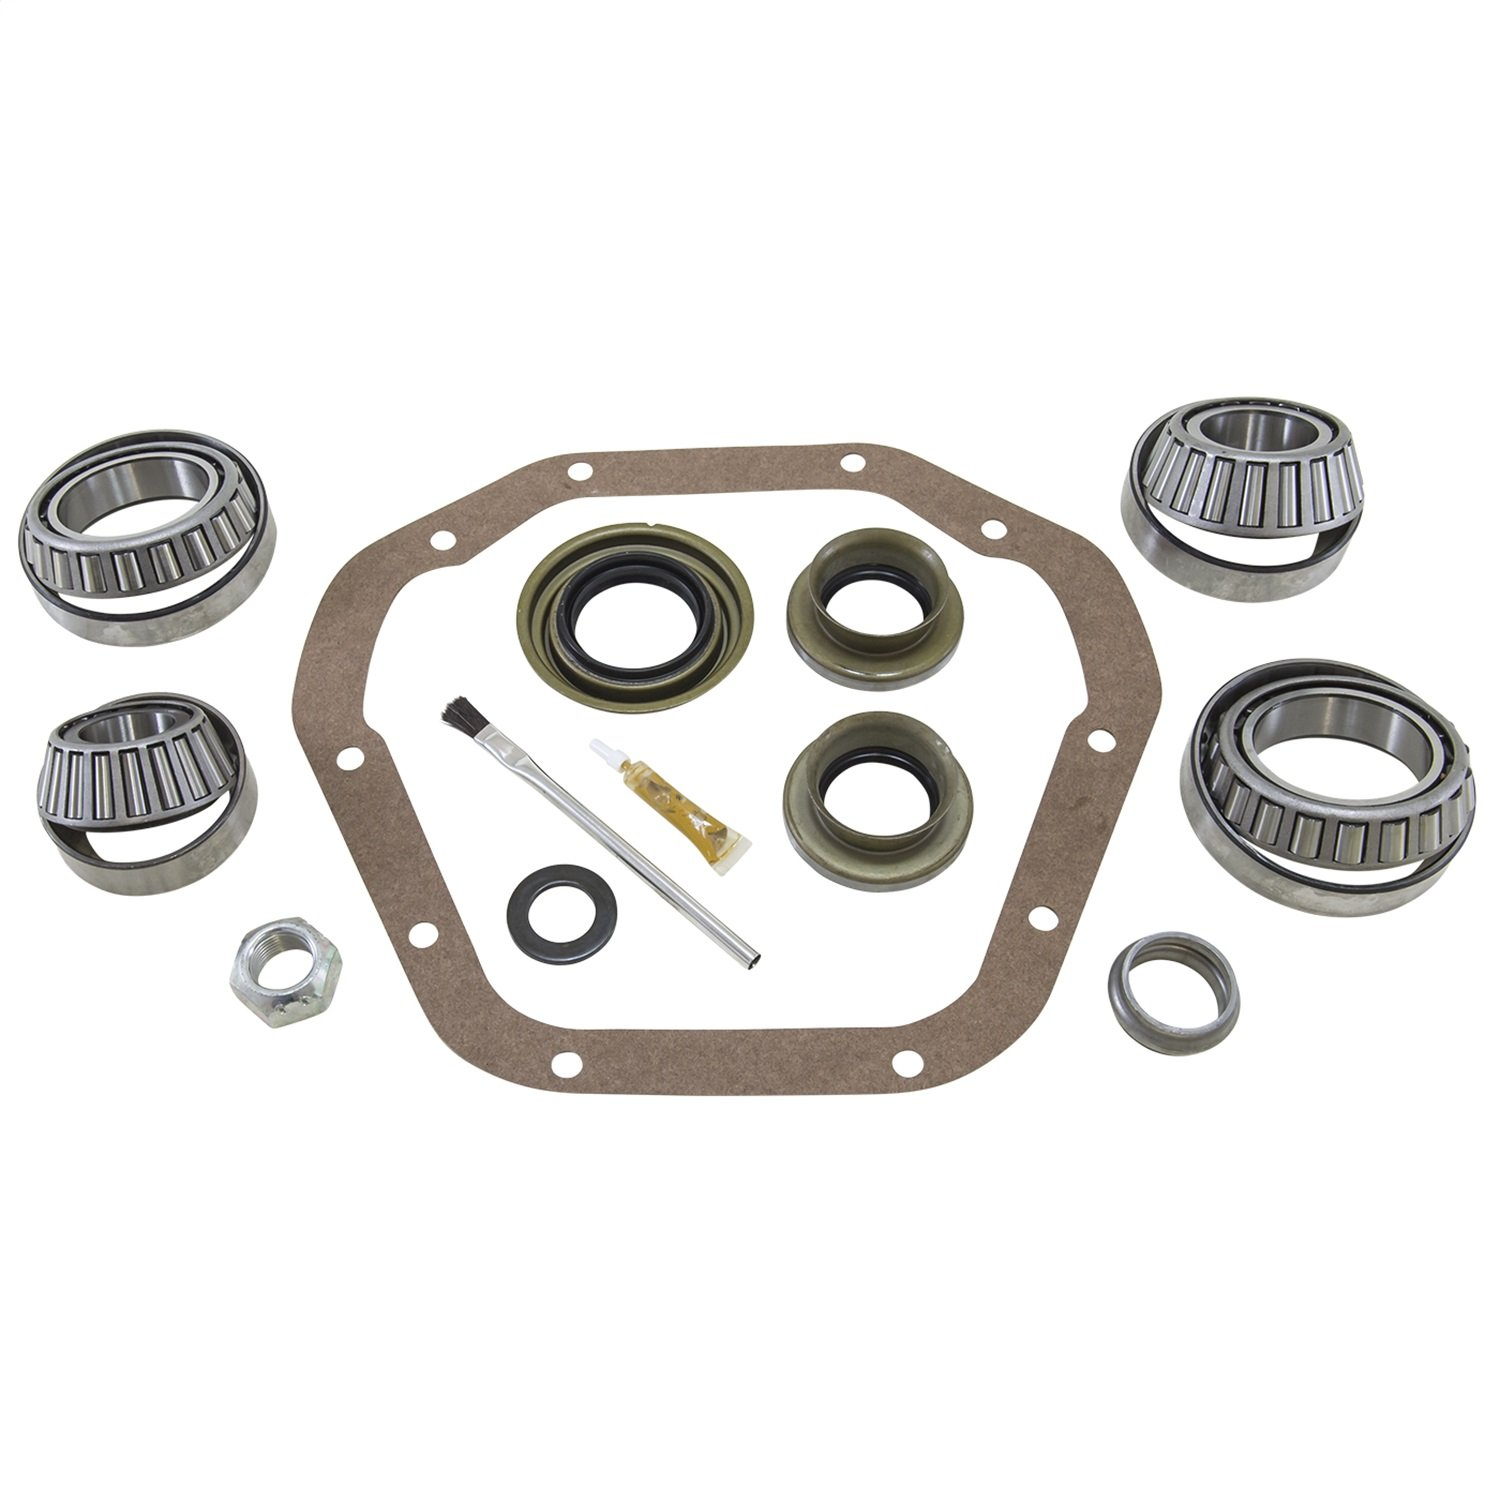 USA Standard Gear (ZBKD60-F) Bearing Kit for Dana 60 Front Differential by USA Standard Gear